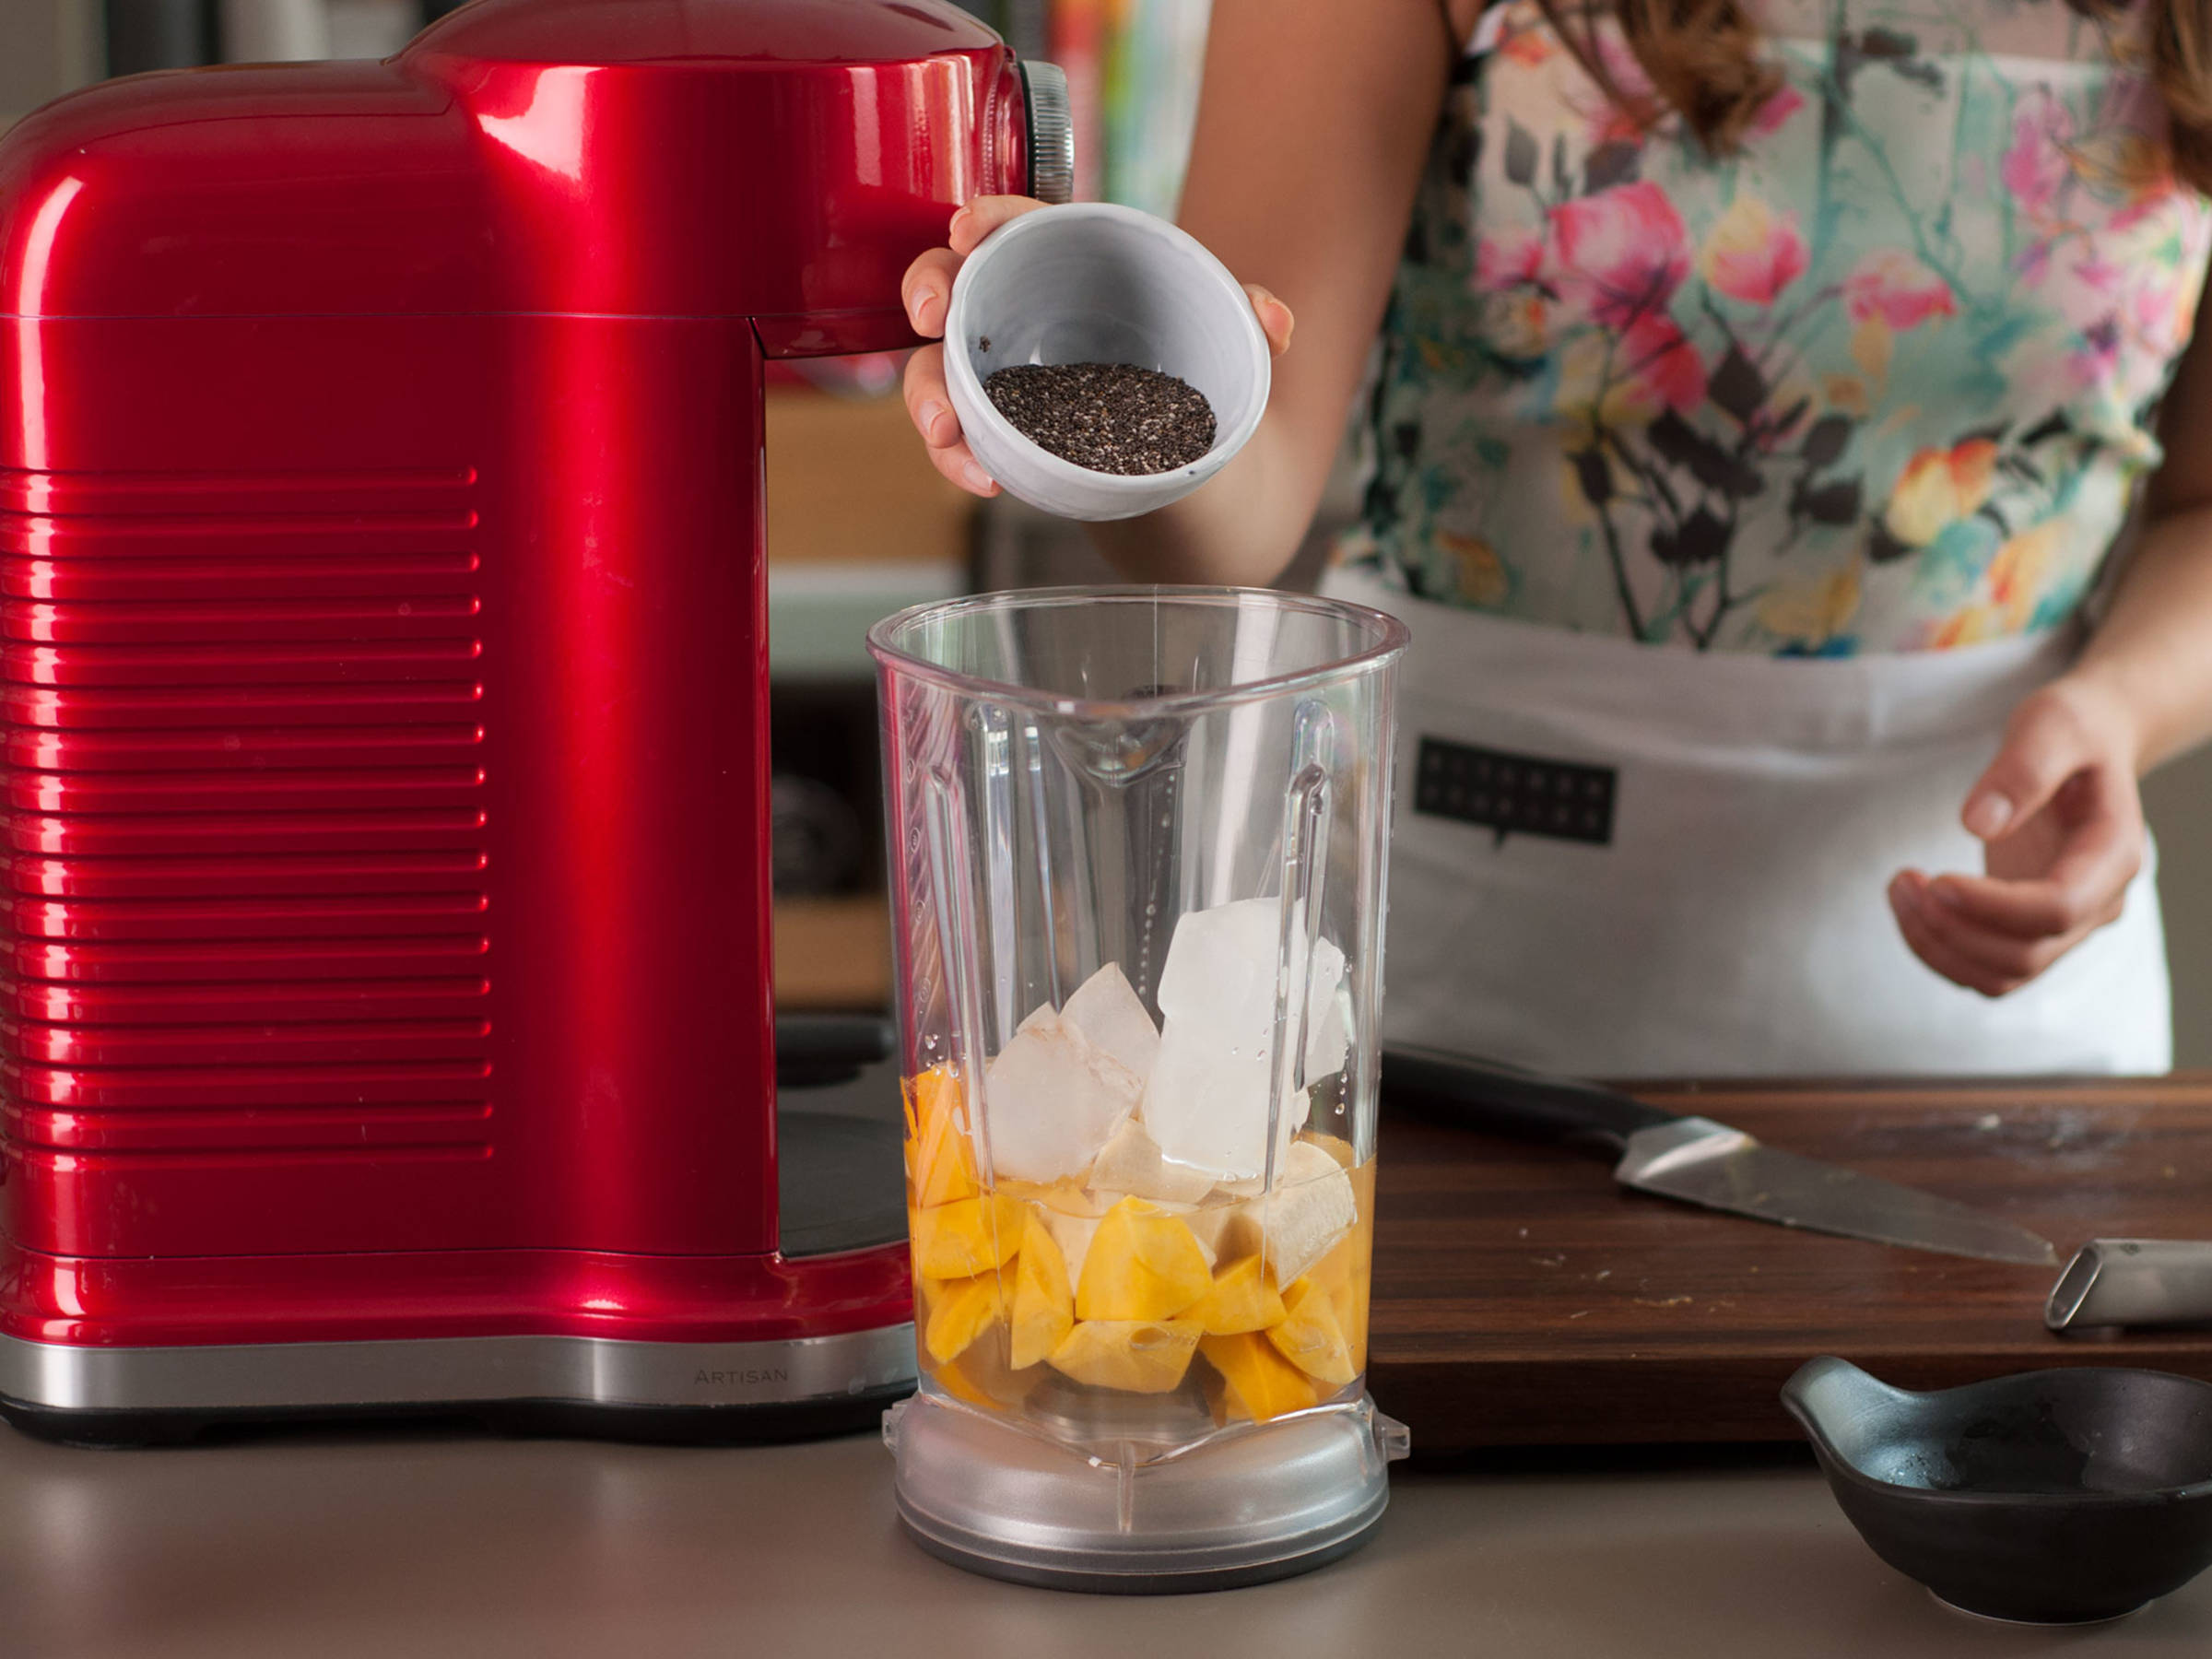 Add mango, banana, ice cubes, water, and chia seeds to blender.